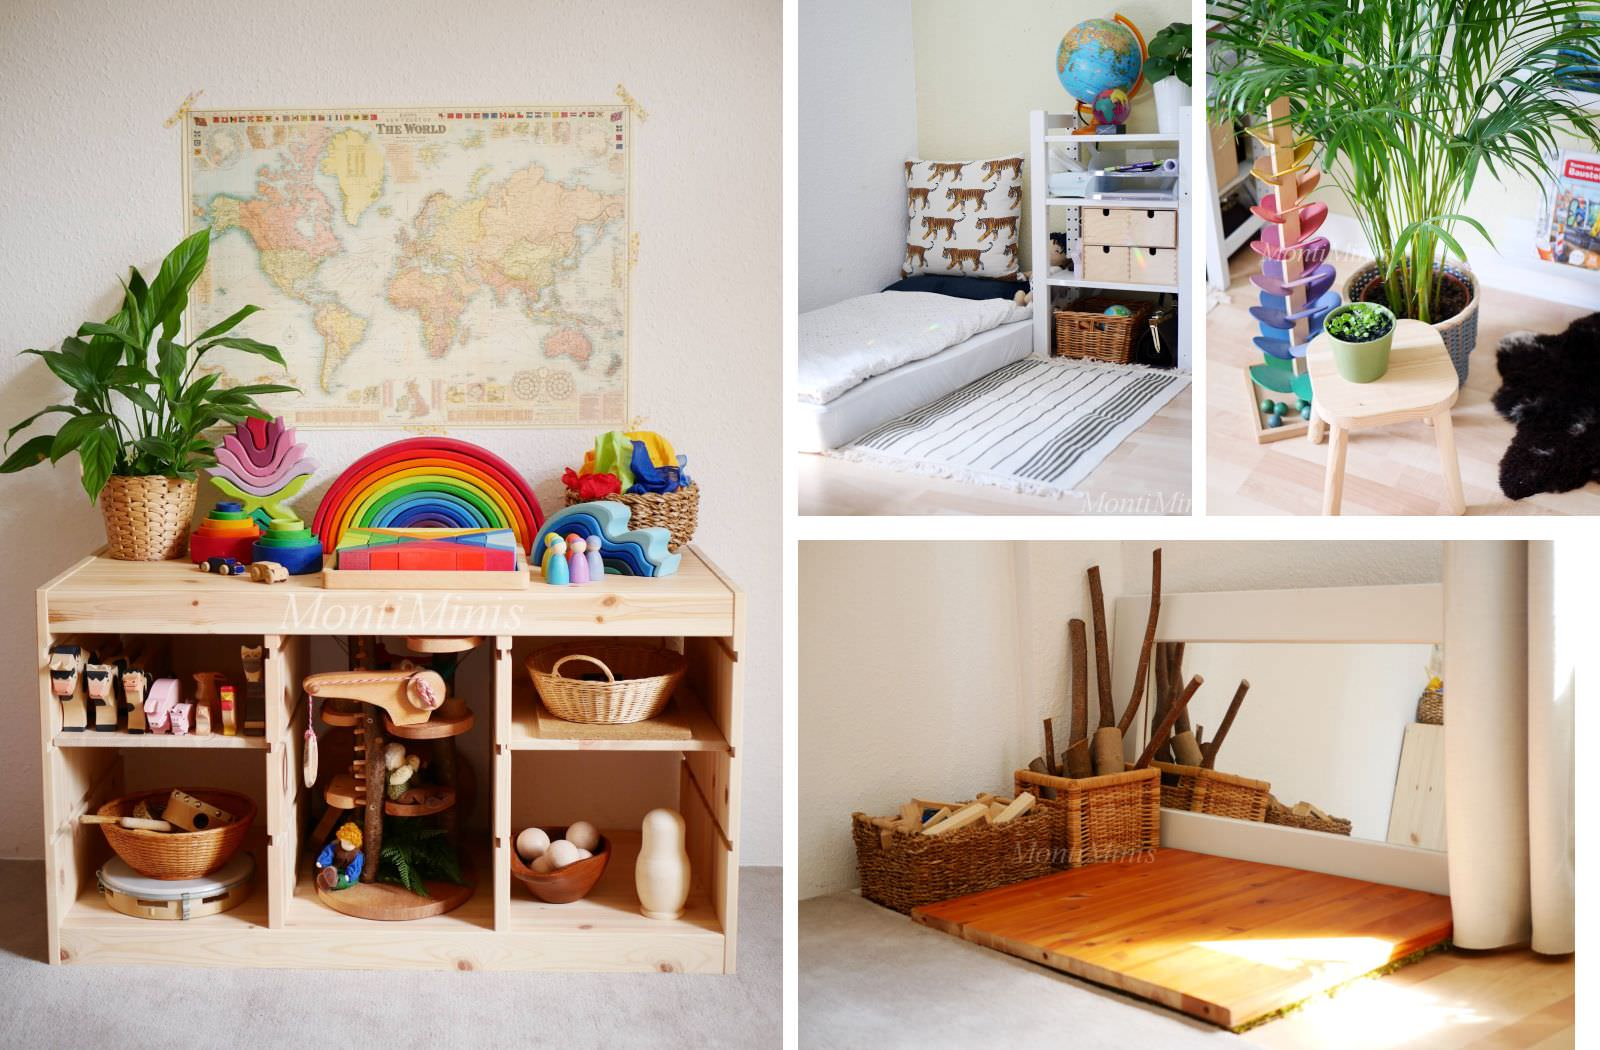 Neues aus michels kinderzimmer update mai 2018 montiminis for Montessori kinderzimmer